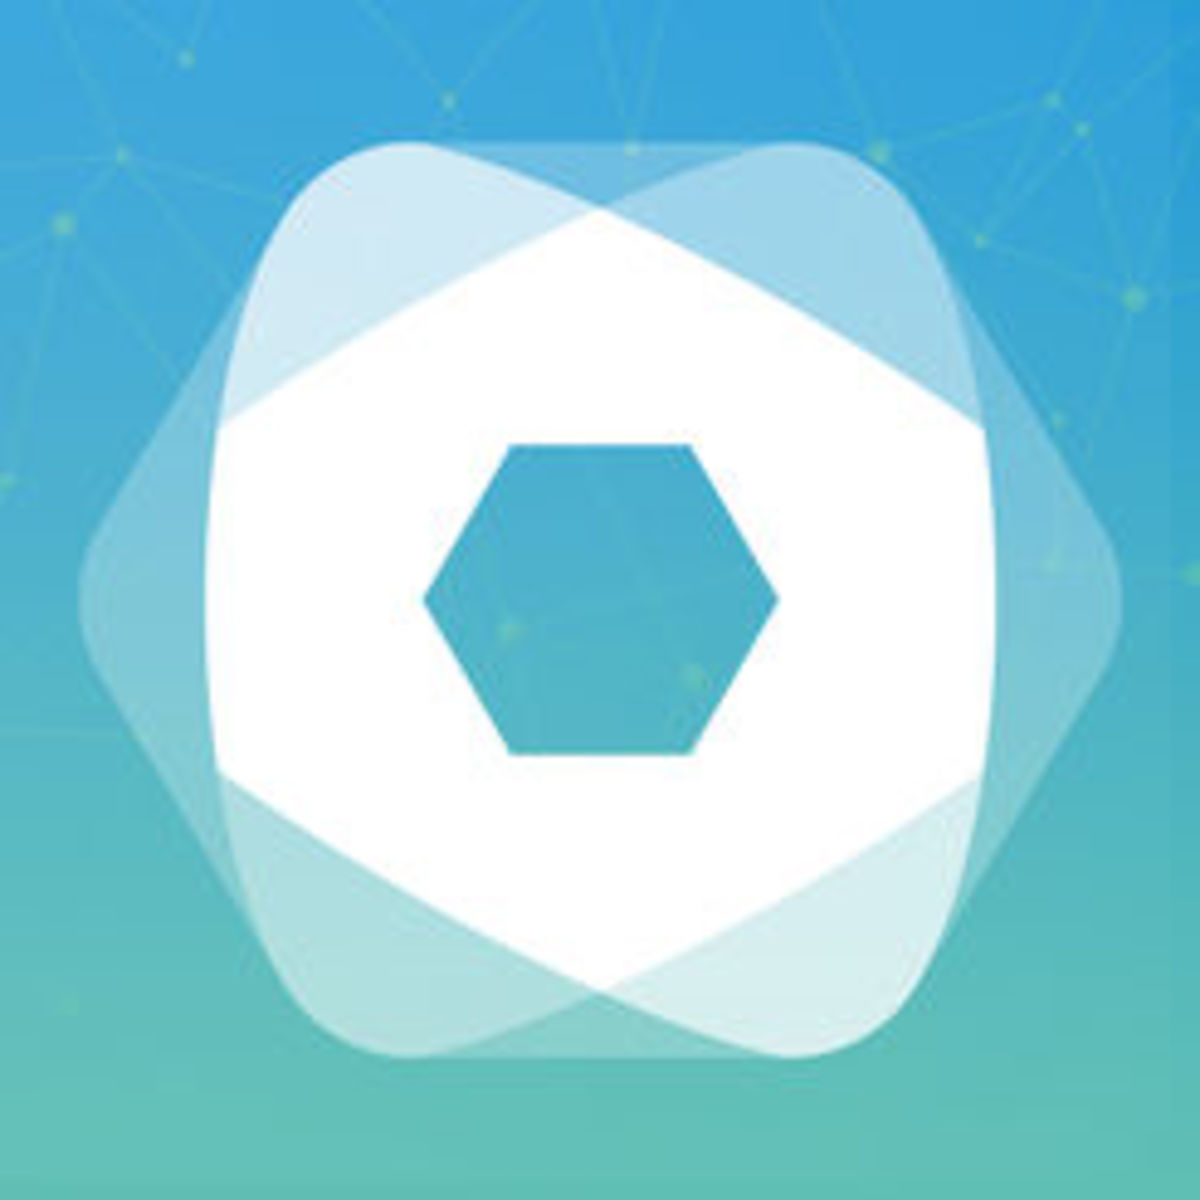 The official Panel App Logo